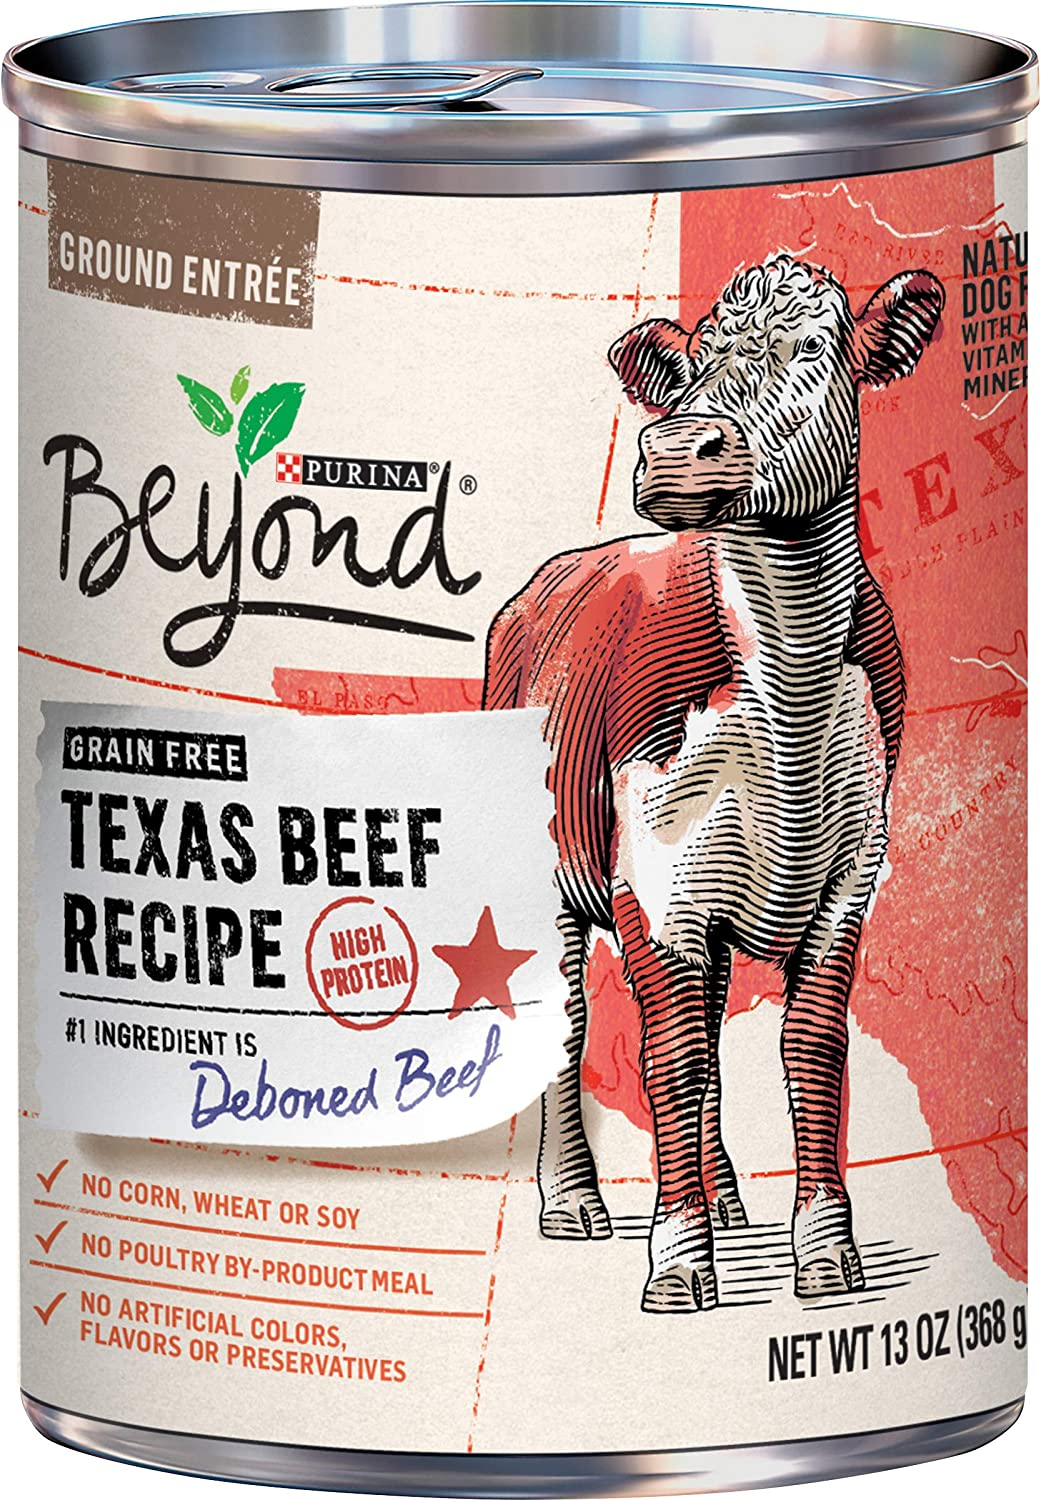 Purina Beyond Grain Free, Natural, High Protein Wet Dog Food, Texas Beef Recipe - (12) 13 oz. Cans